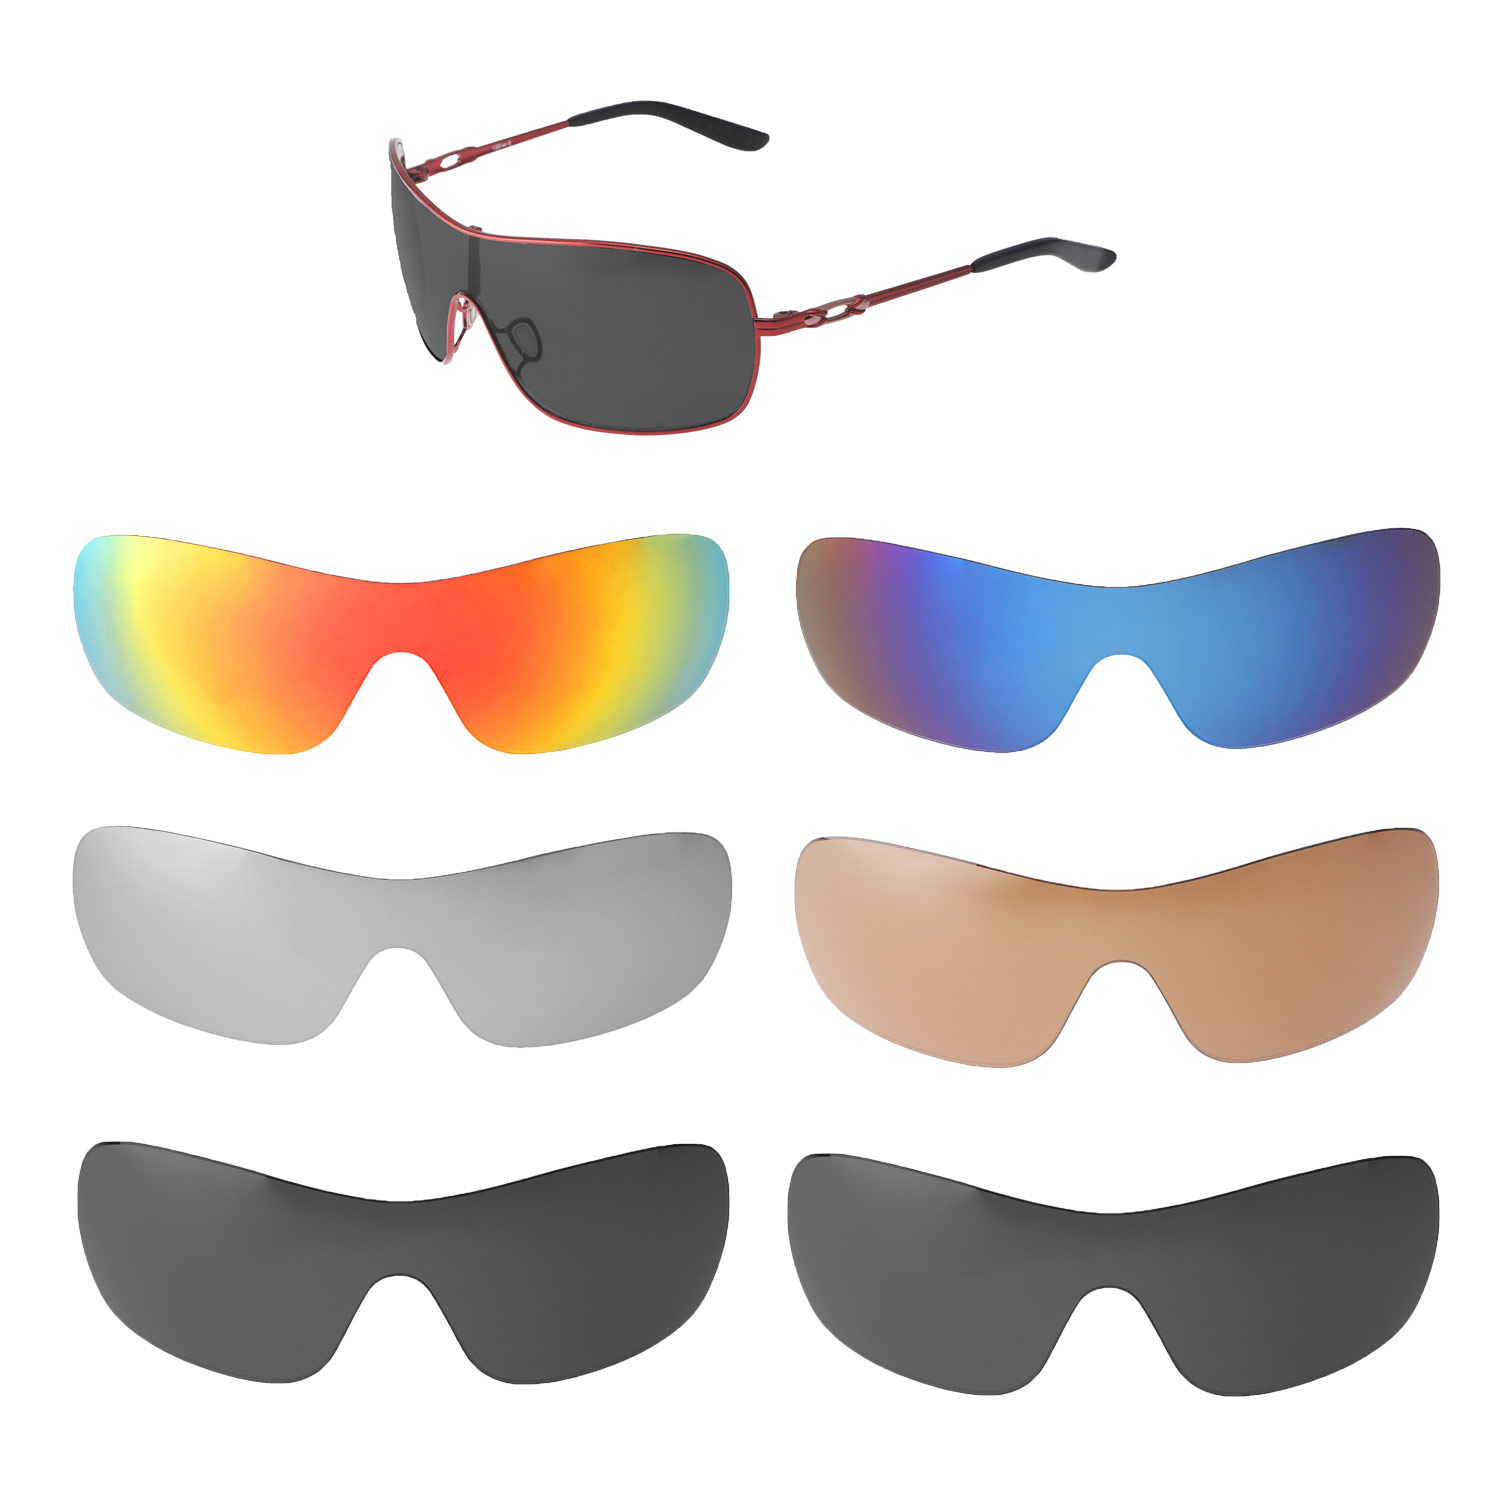 e11930bede3 Details about Walleva Replacement Lenses for Oakley Distress Sunglasses - Multiple  Options